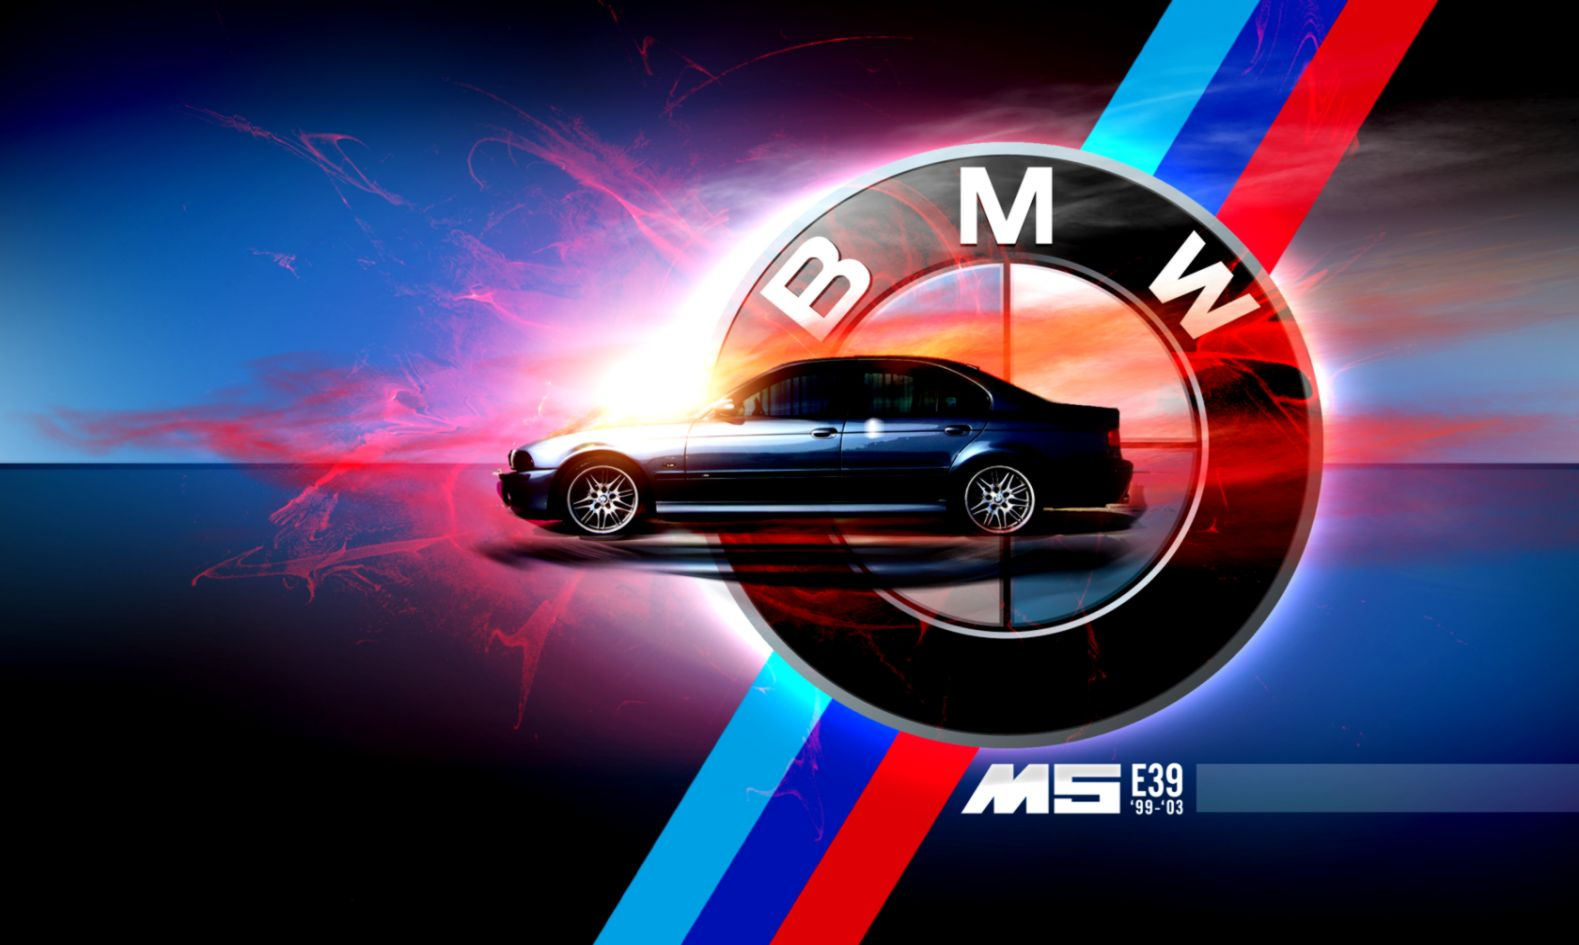 Bmw M5 Logo Hd Wallpaper | Best HD Wallpapers